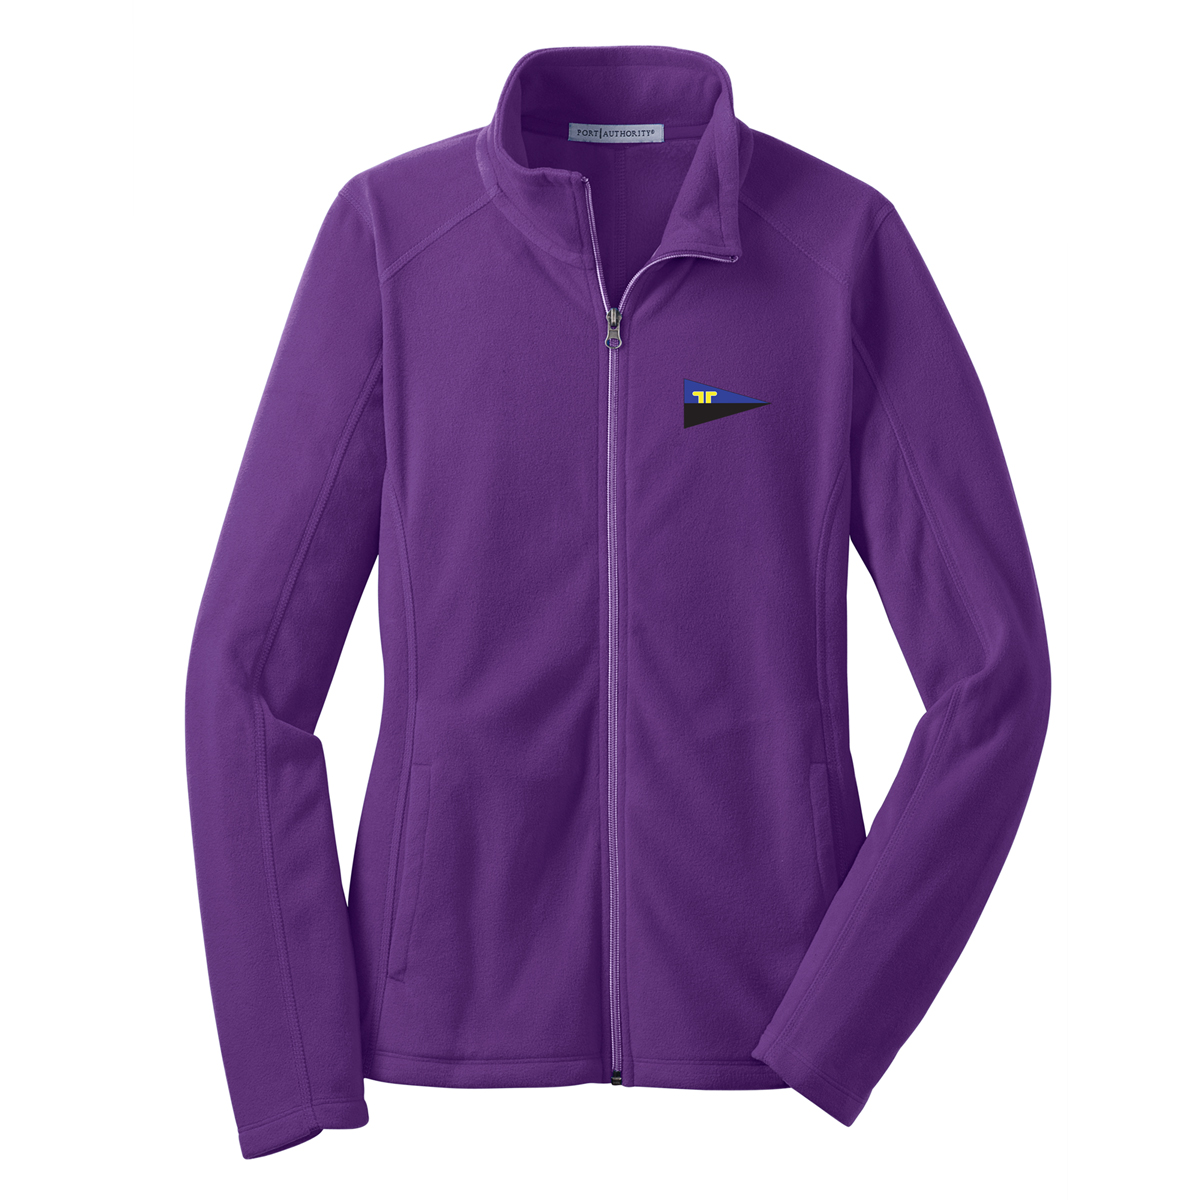 MDH-LADIES MICRO FLEECE JACKET